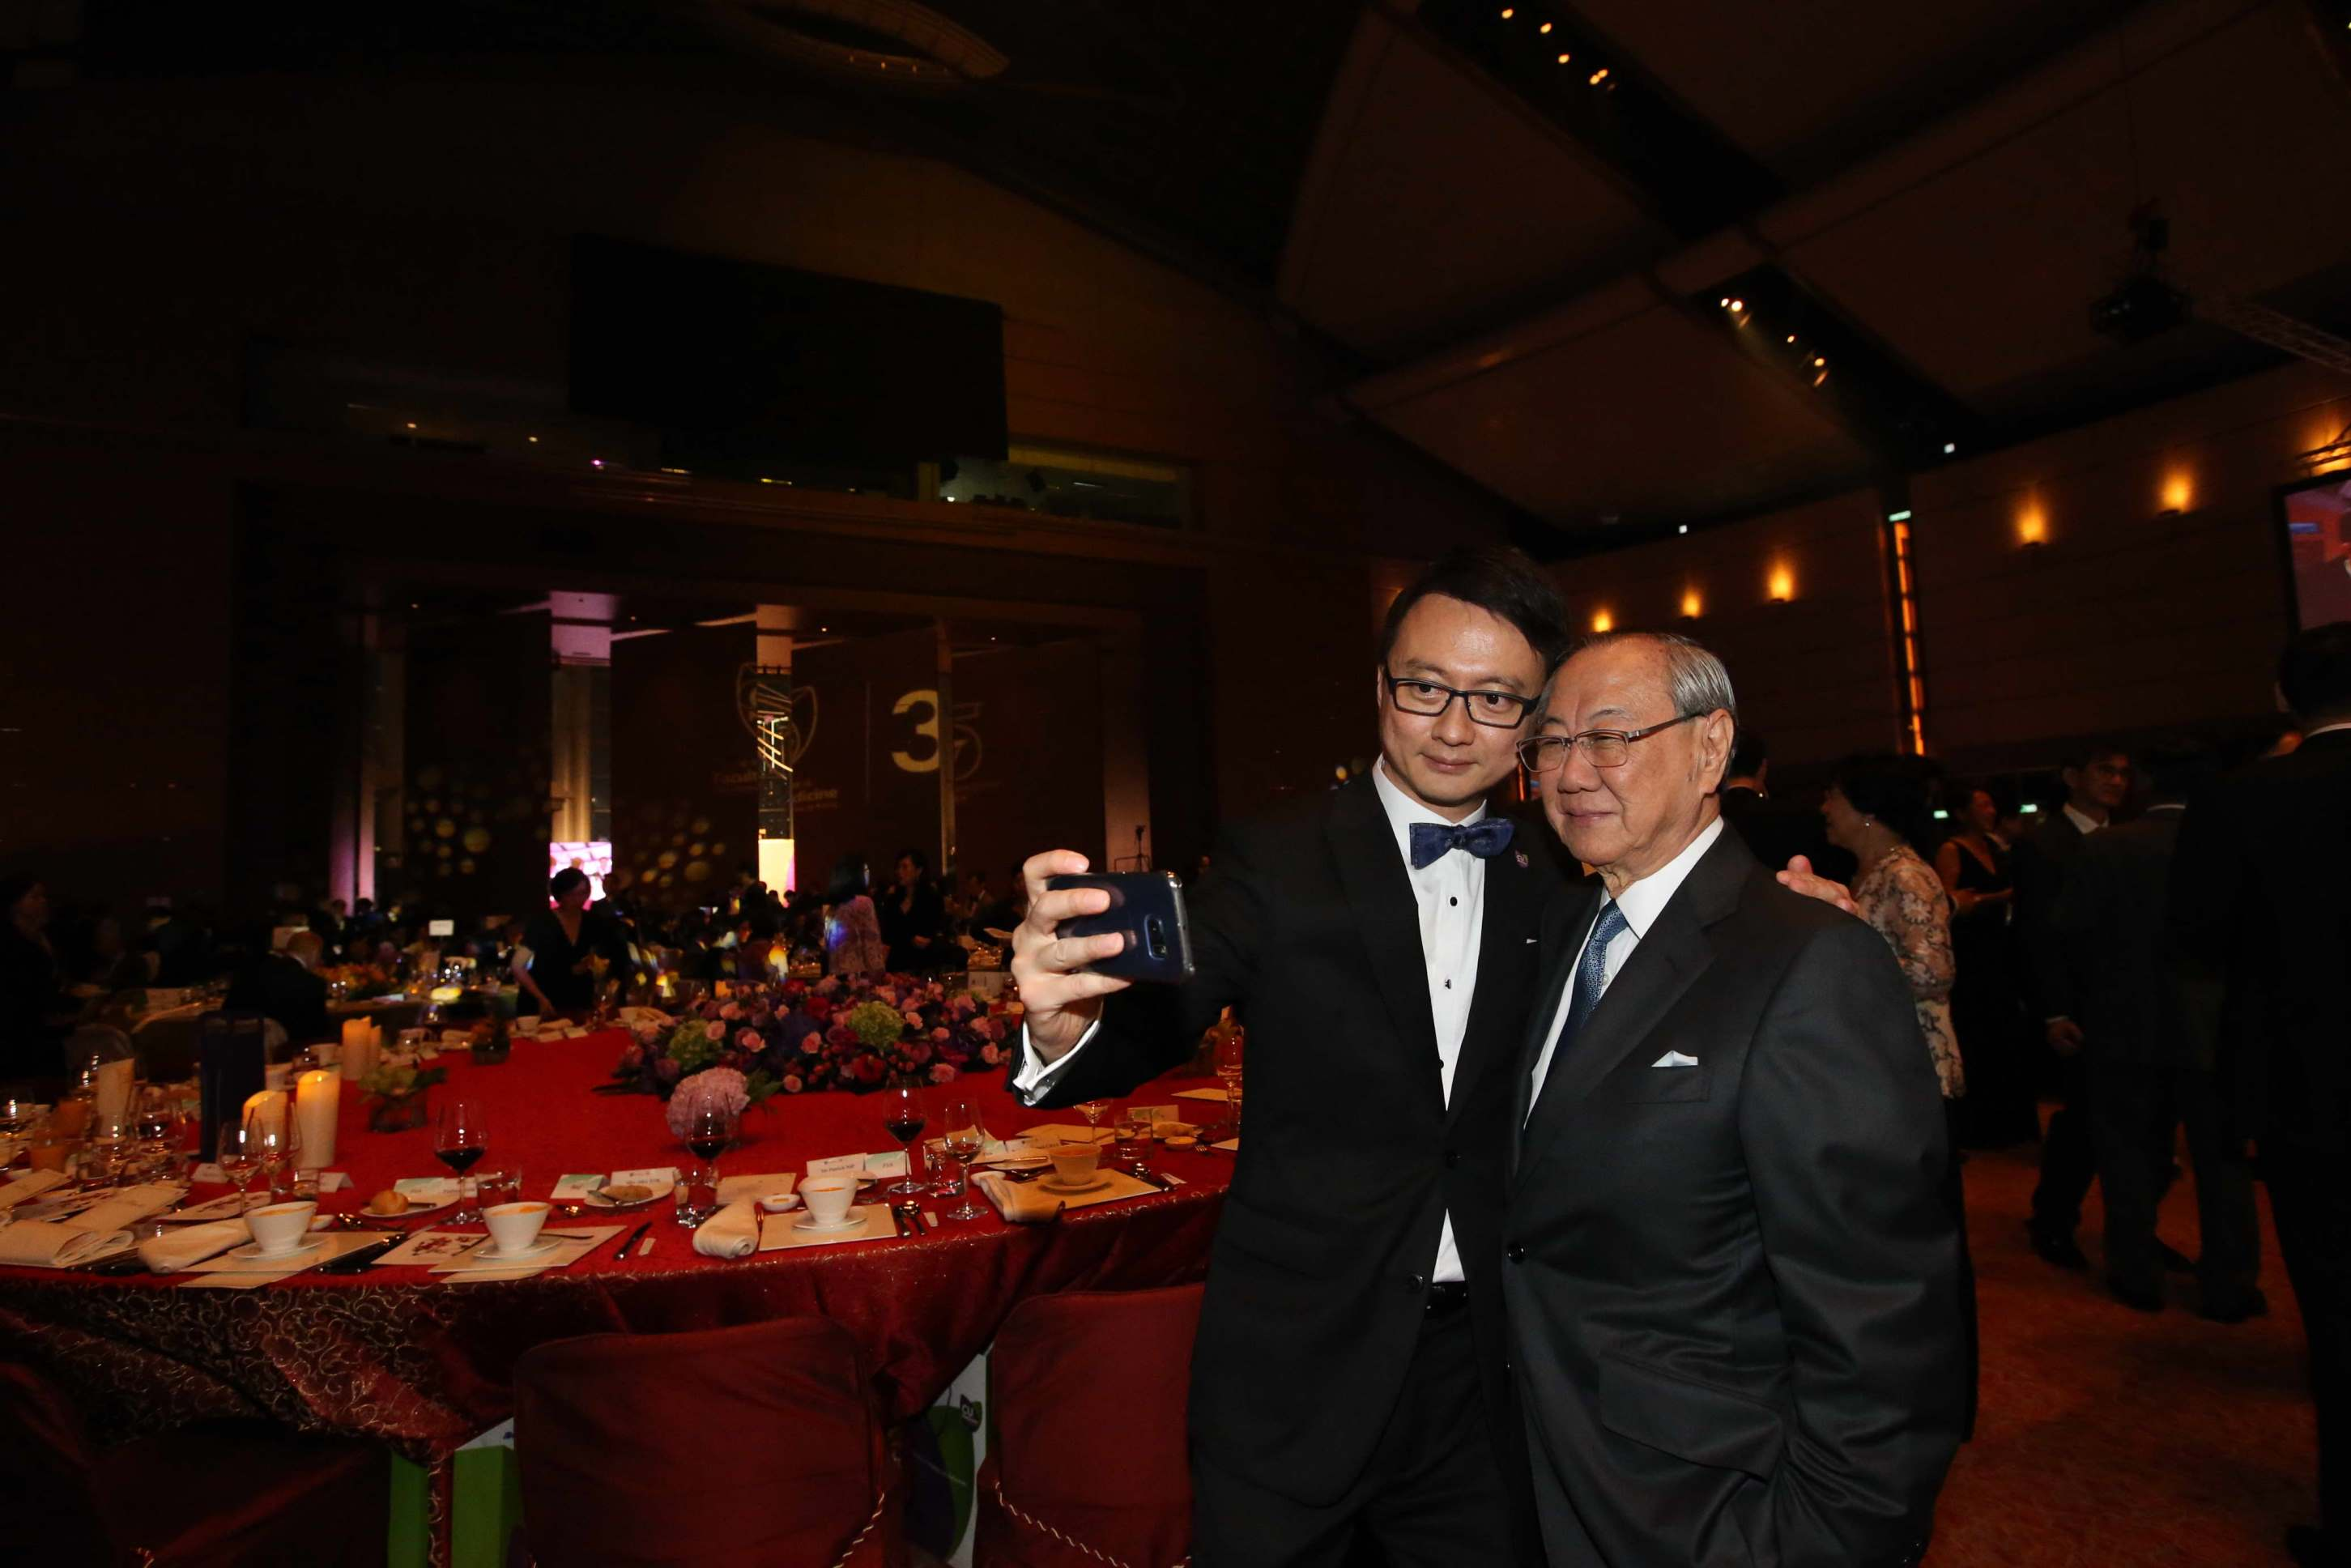 (Left) Prof. Francis CHAN and guest join the mobile selfie session to capture the memorable occasion.